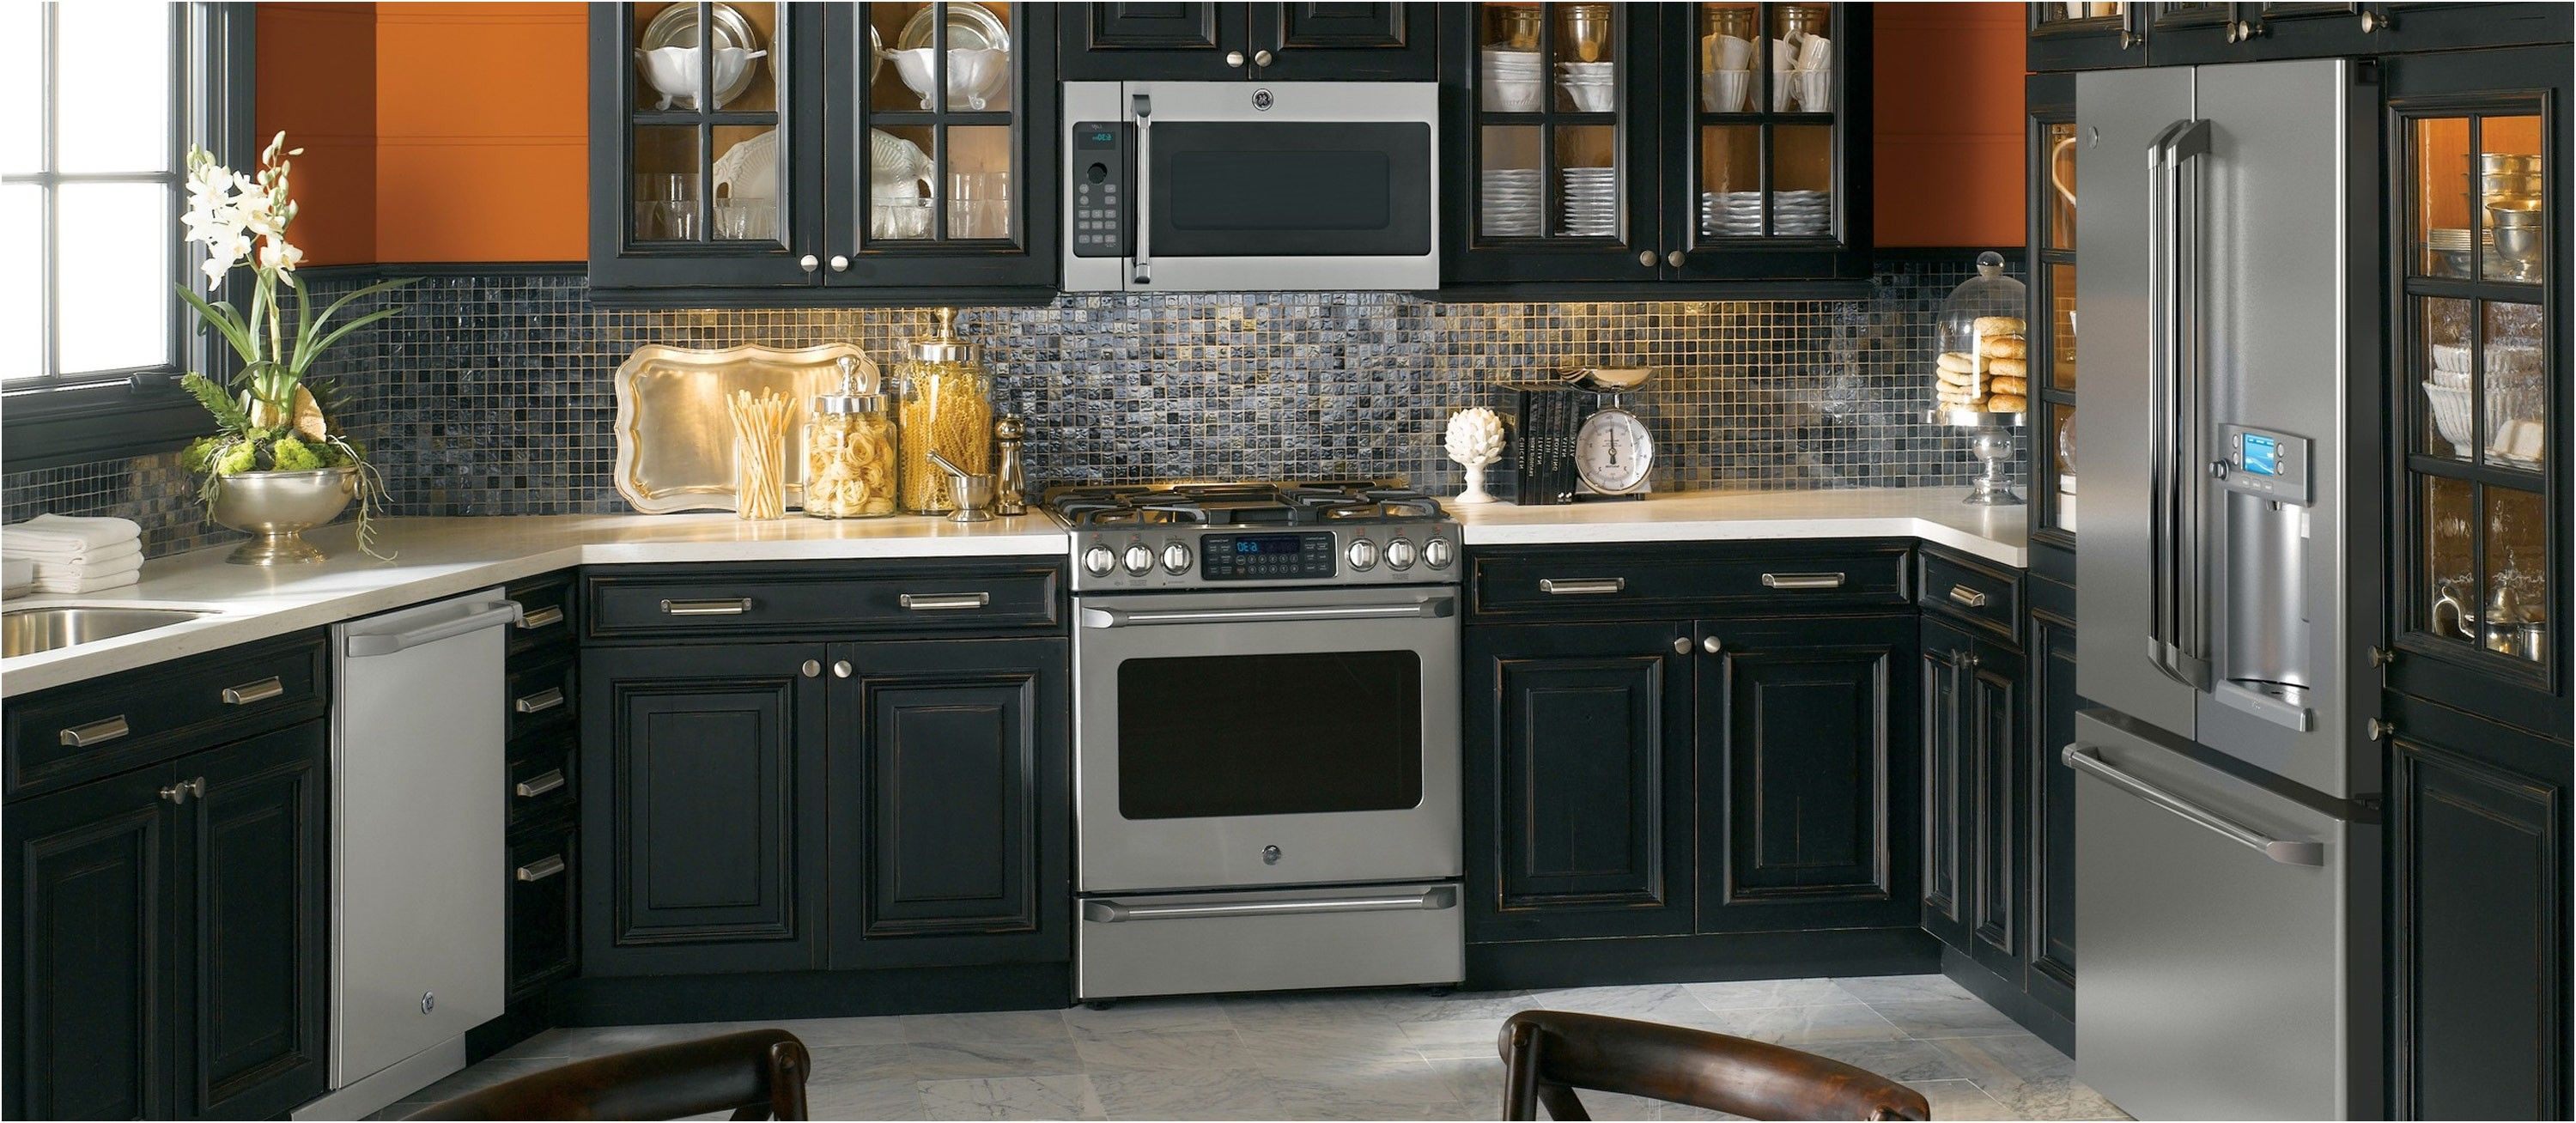 what s the best appliance finish for your kitchen appliances from kitchen cabinet colors with stainless what s the best appliance finish for your kitchen appliances from      rh   pinterest com